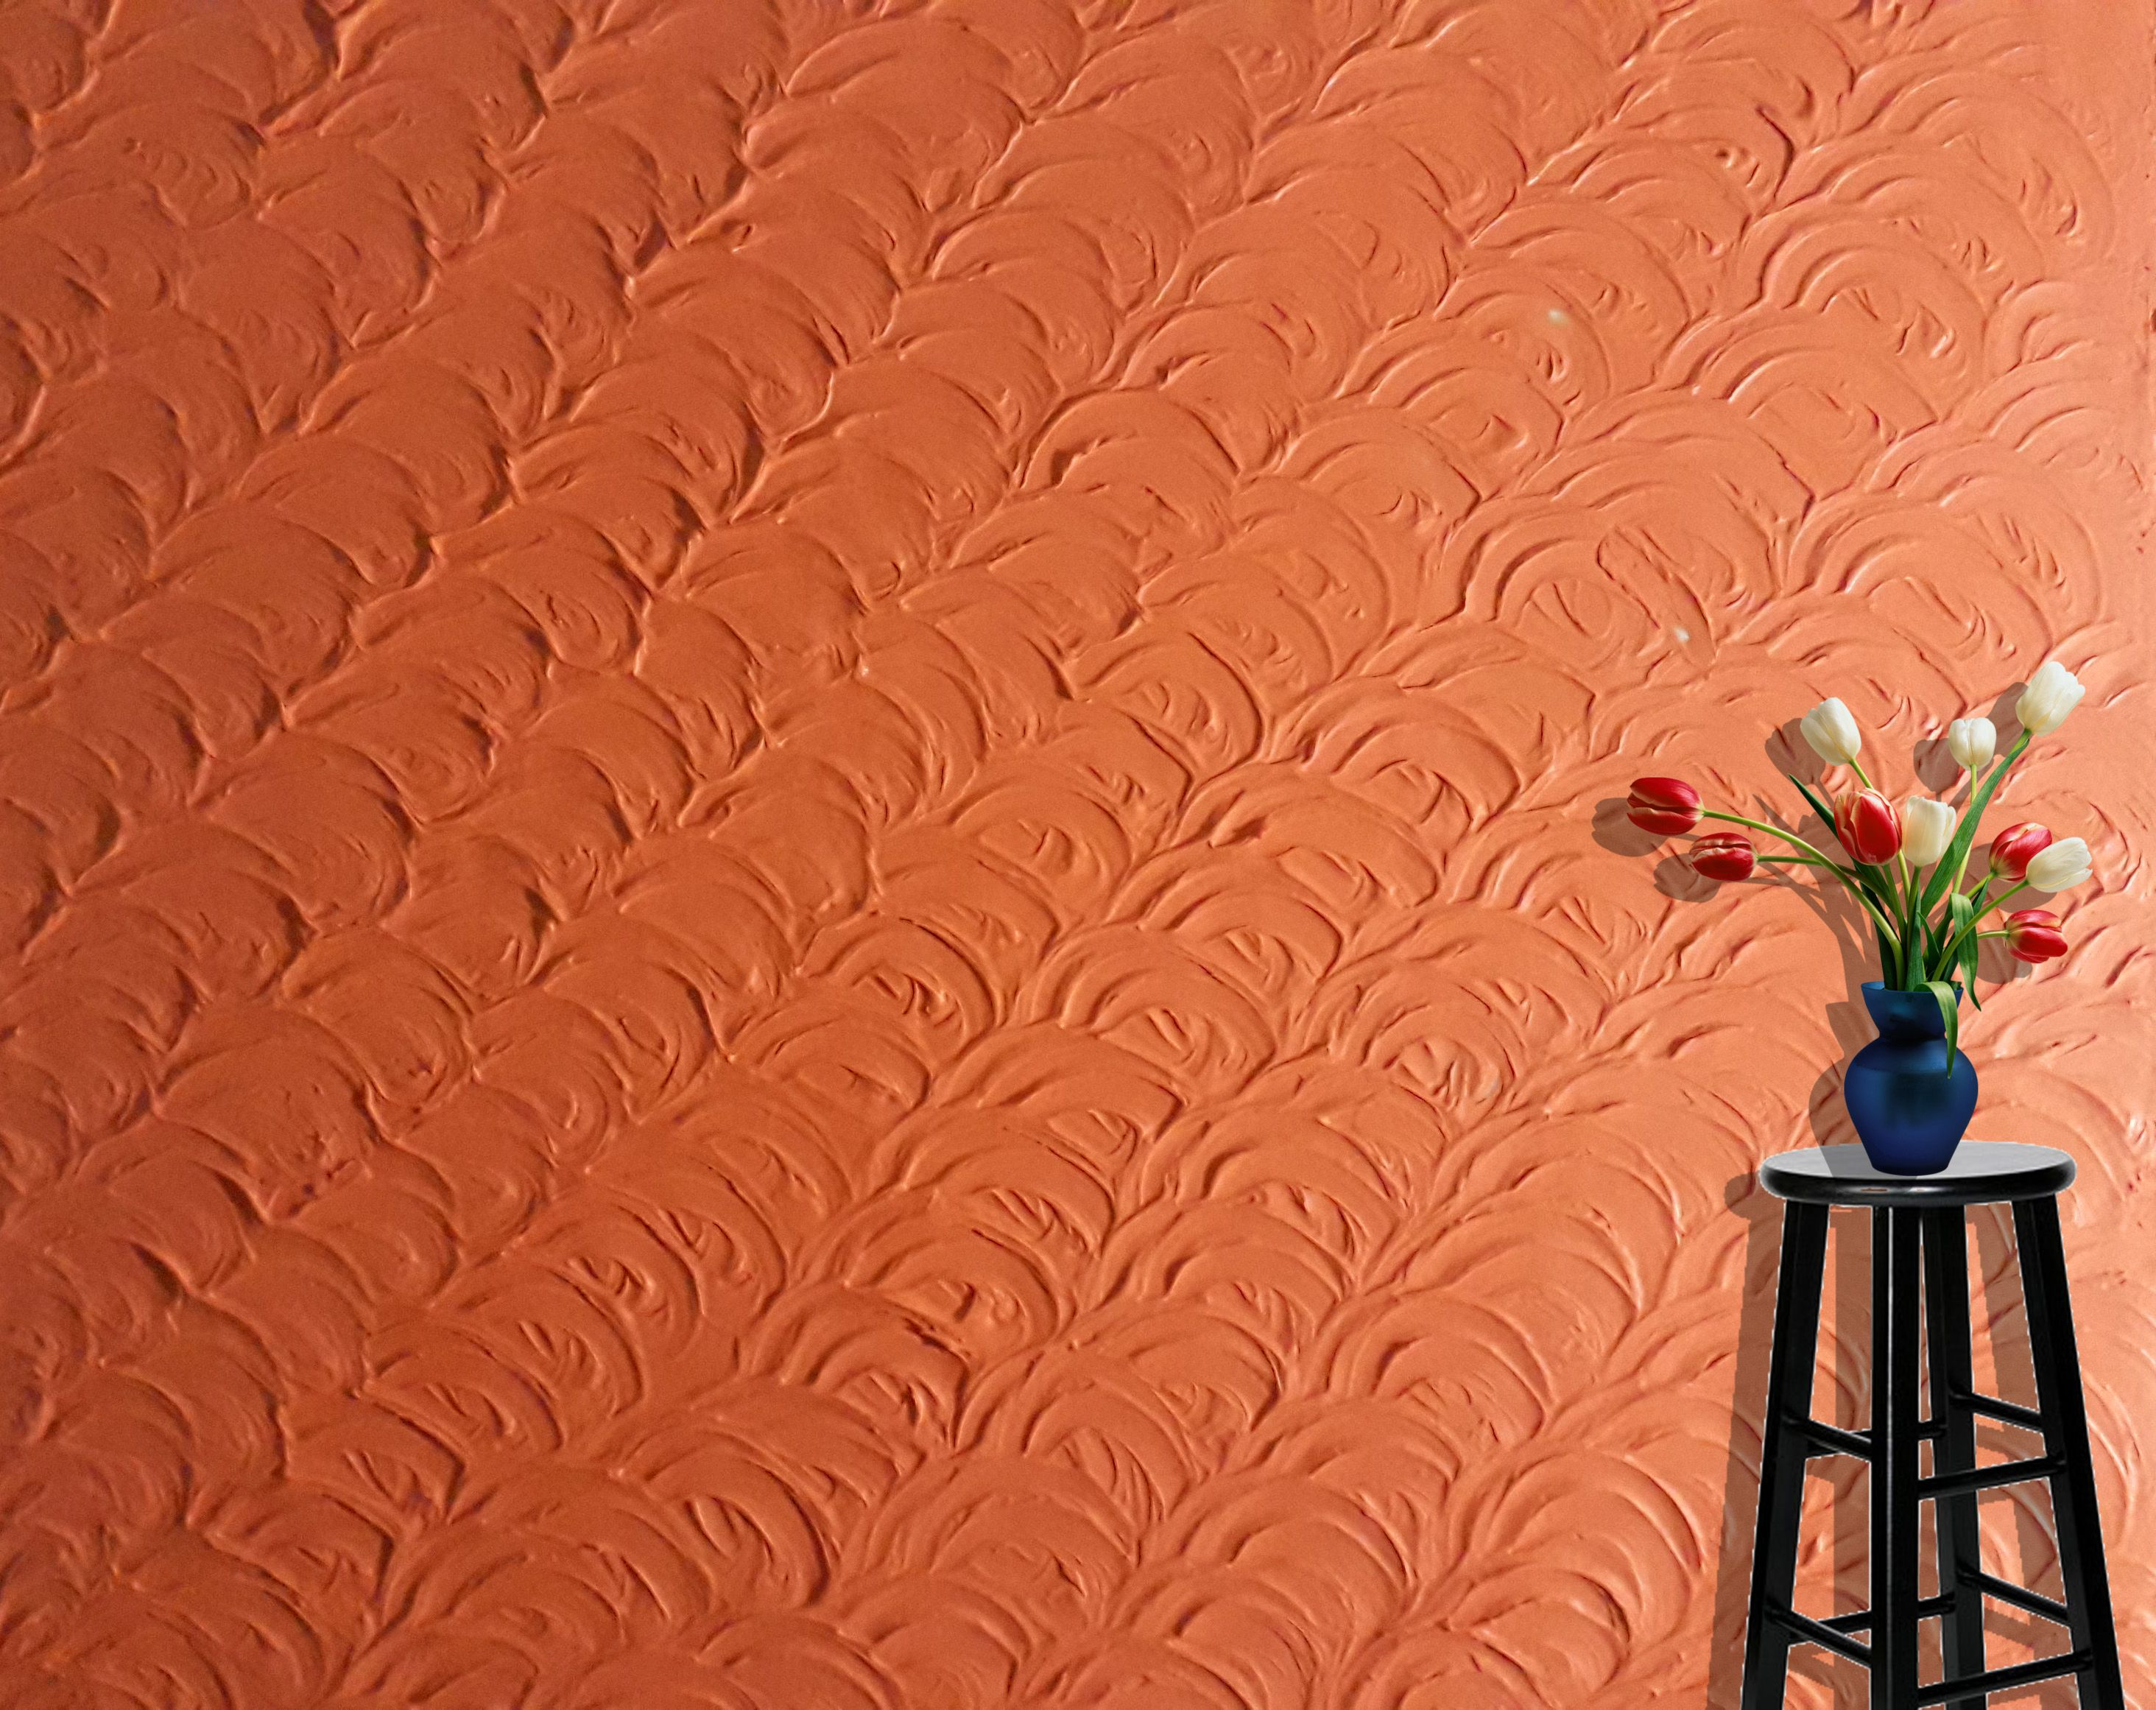 Decorative Texture On Dry Wall Wall Painting Techniques Interior Wall Design Wall Texture Design